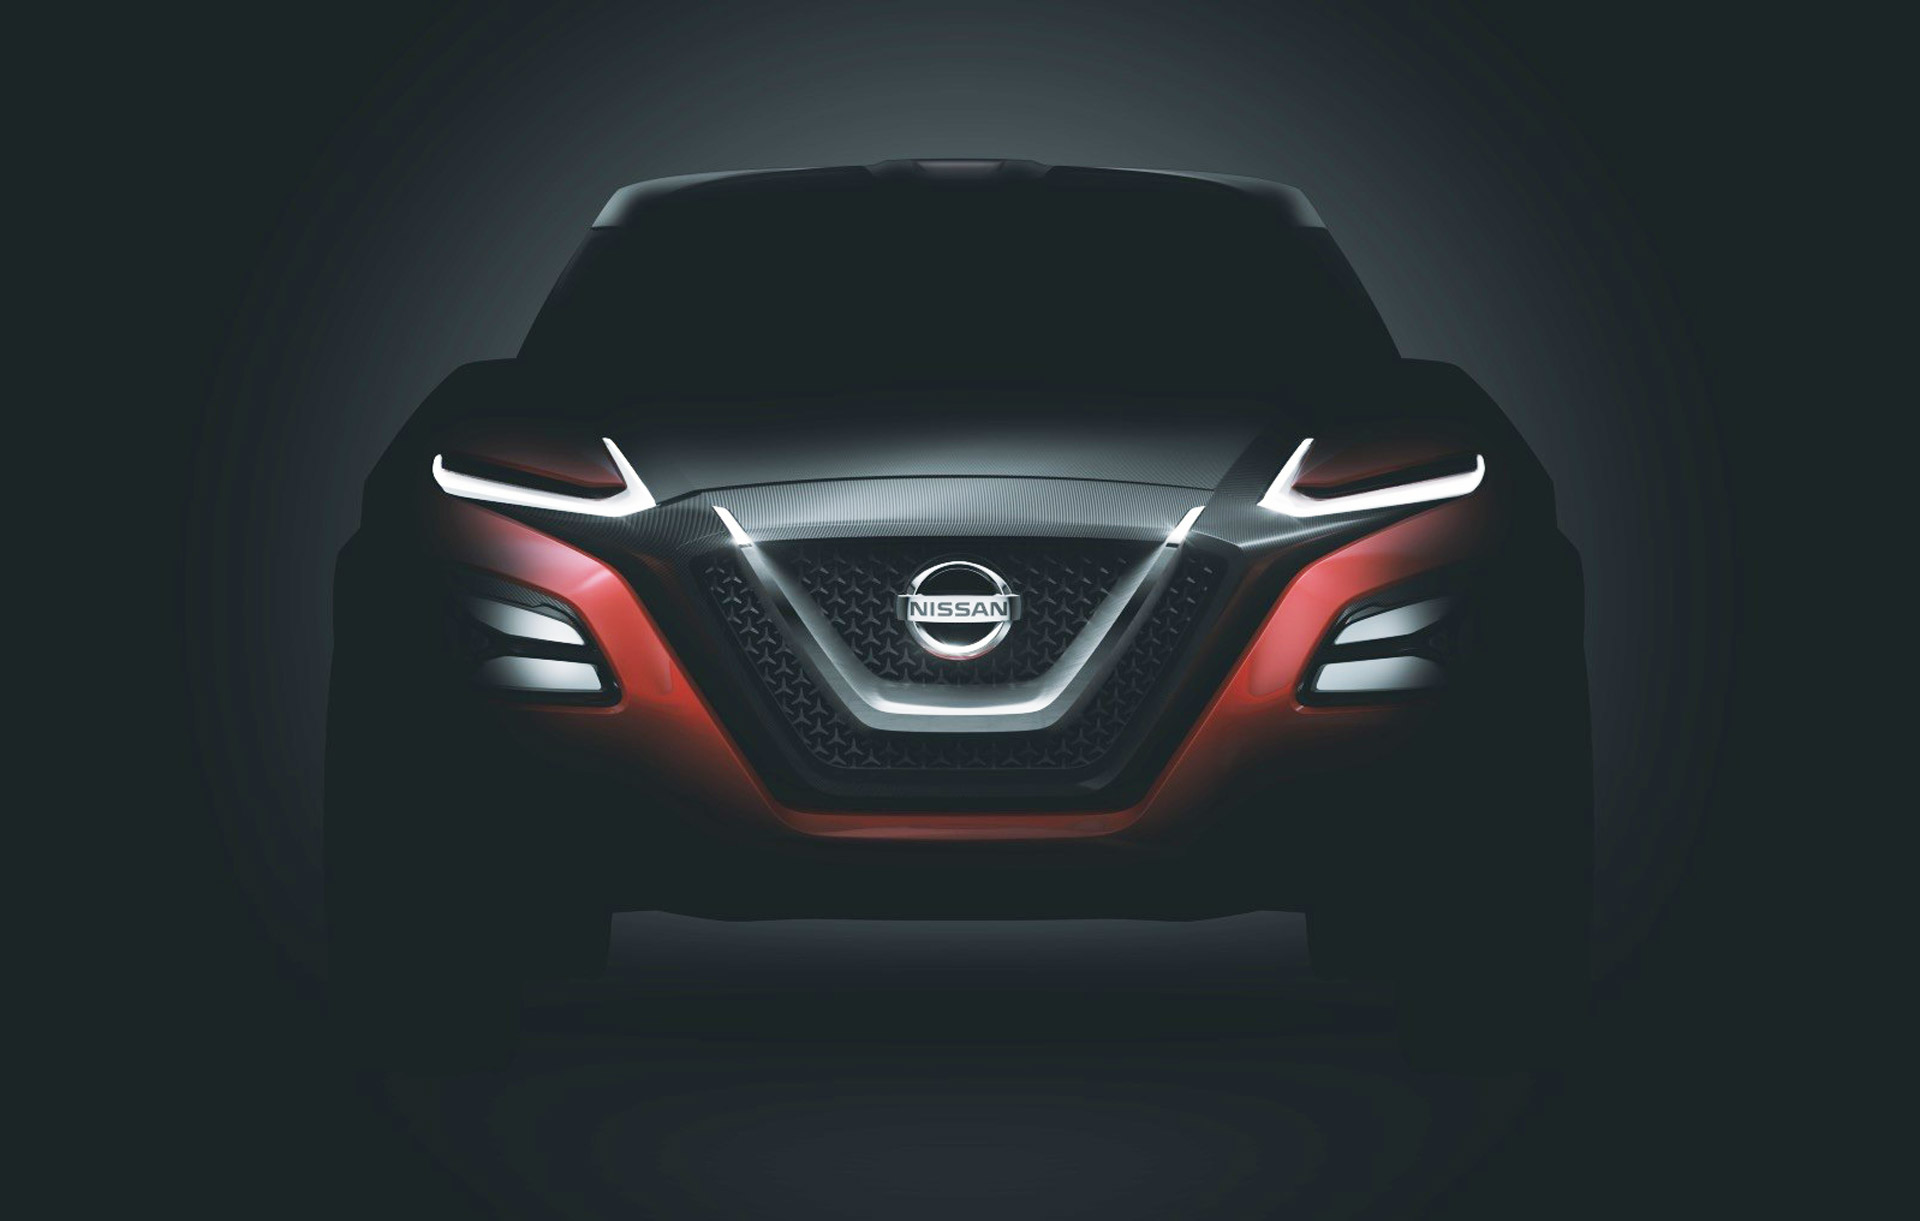 Nissan Gripz Crossover Concept Teased May Hint At High